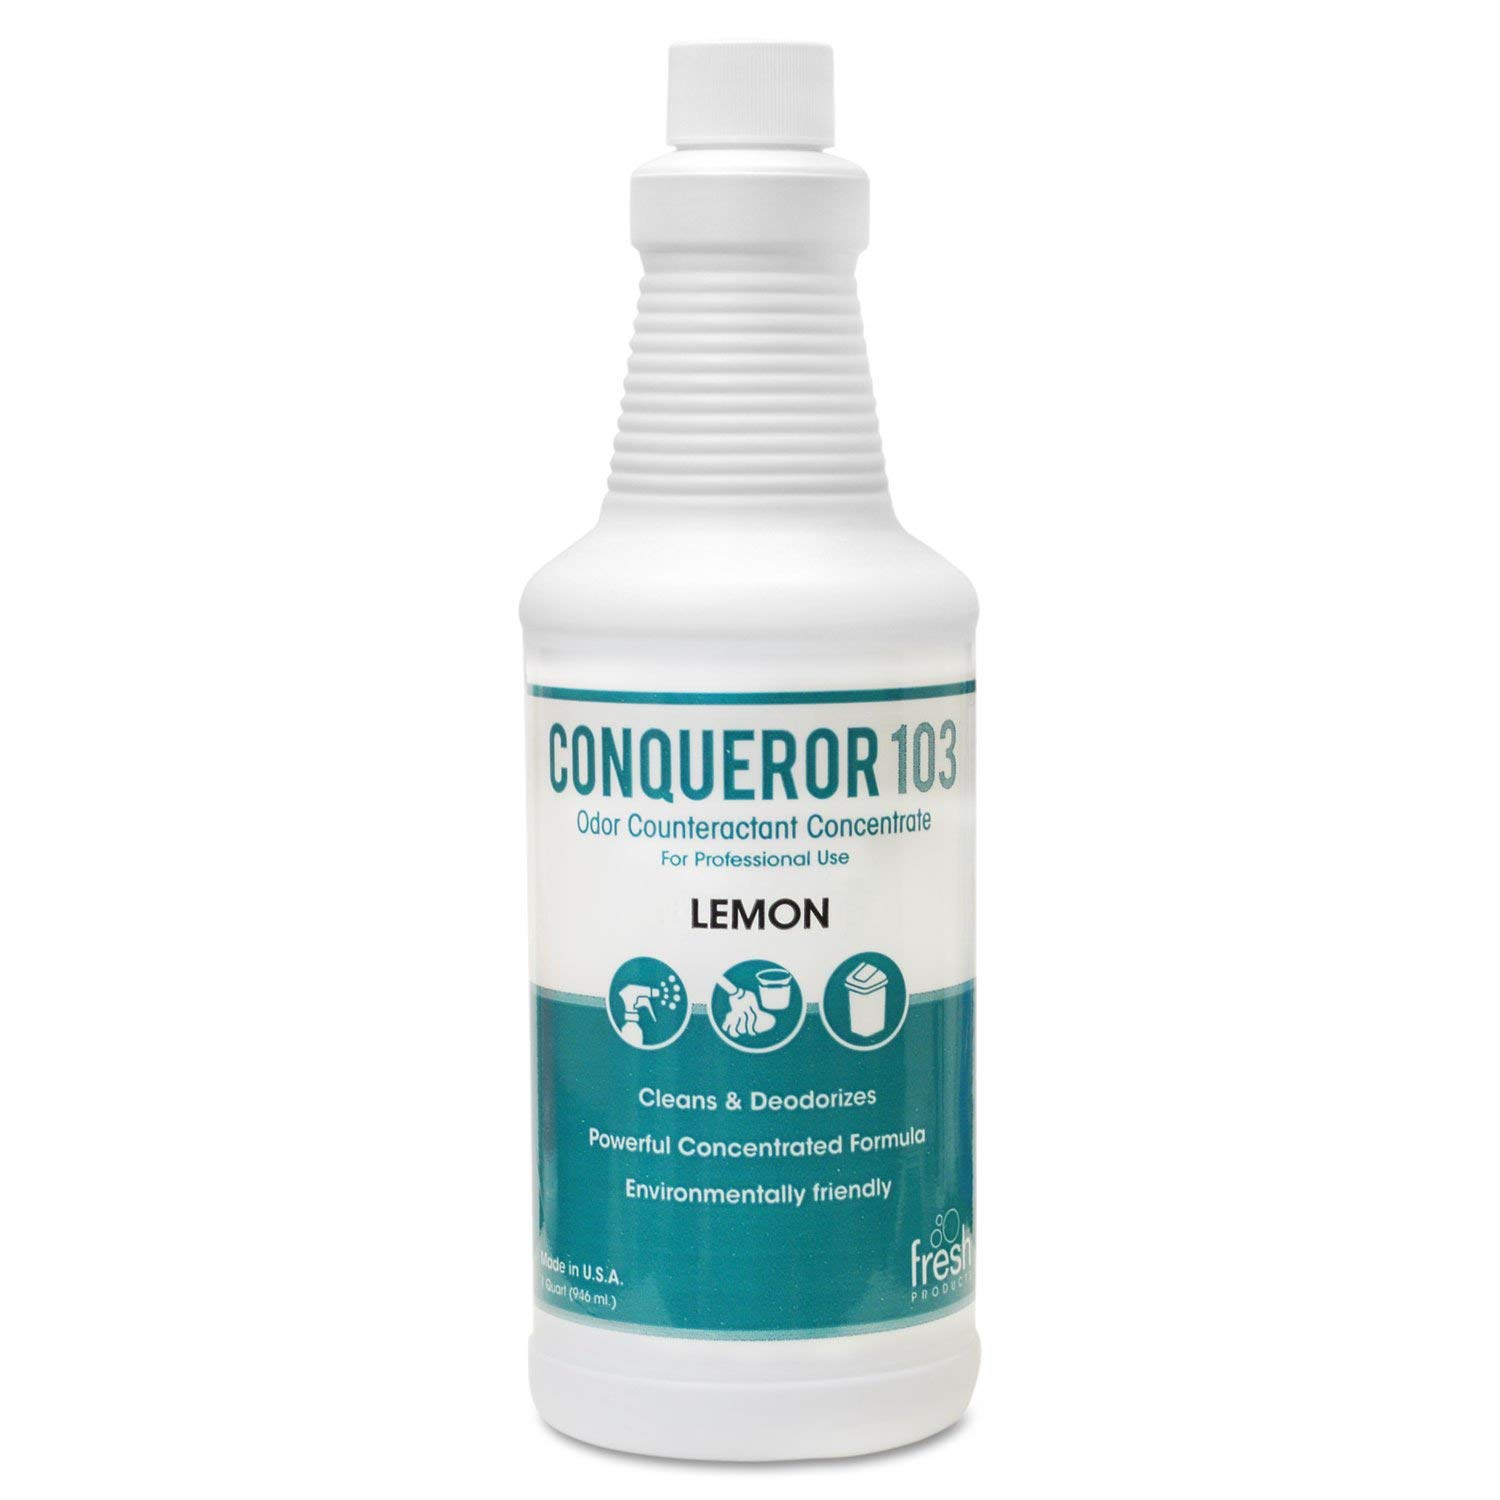 Fresh Products Max 84% OFF 1232WBLECT trust Conqueror Counteractant 103 Odor Conce